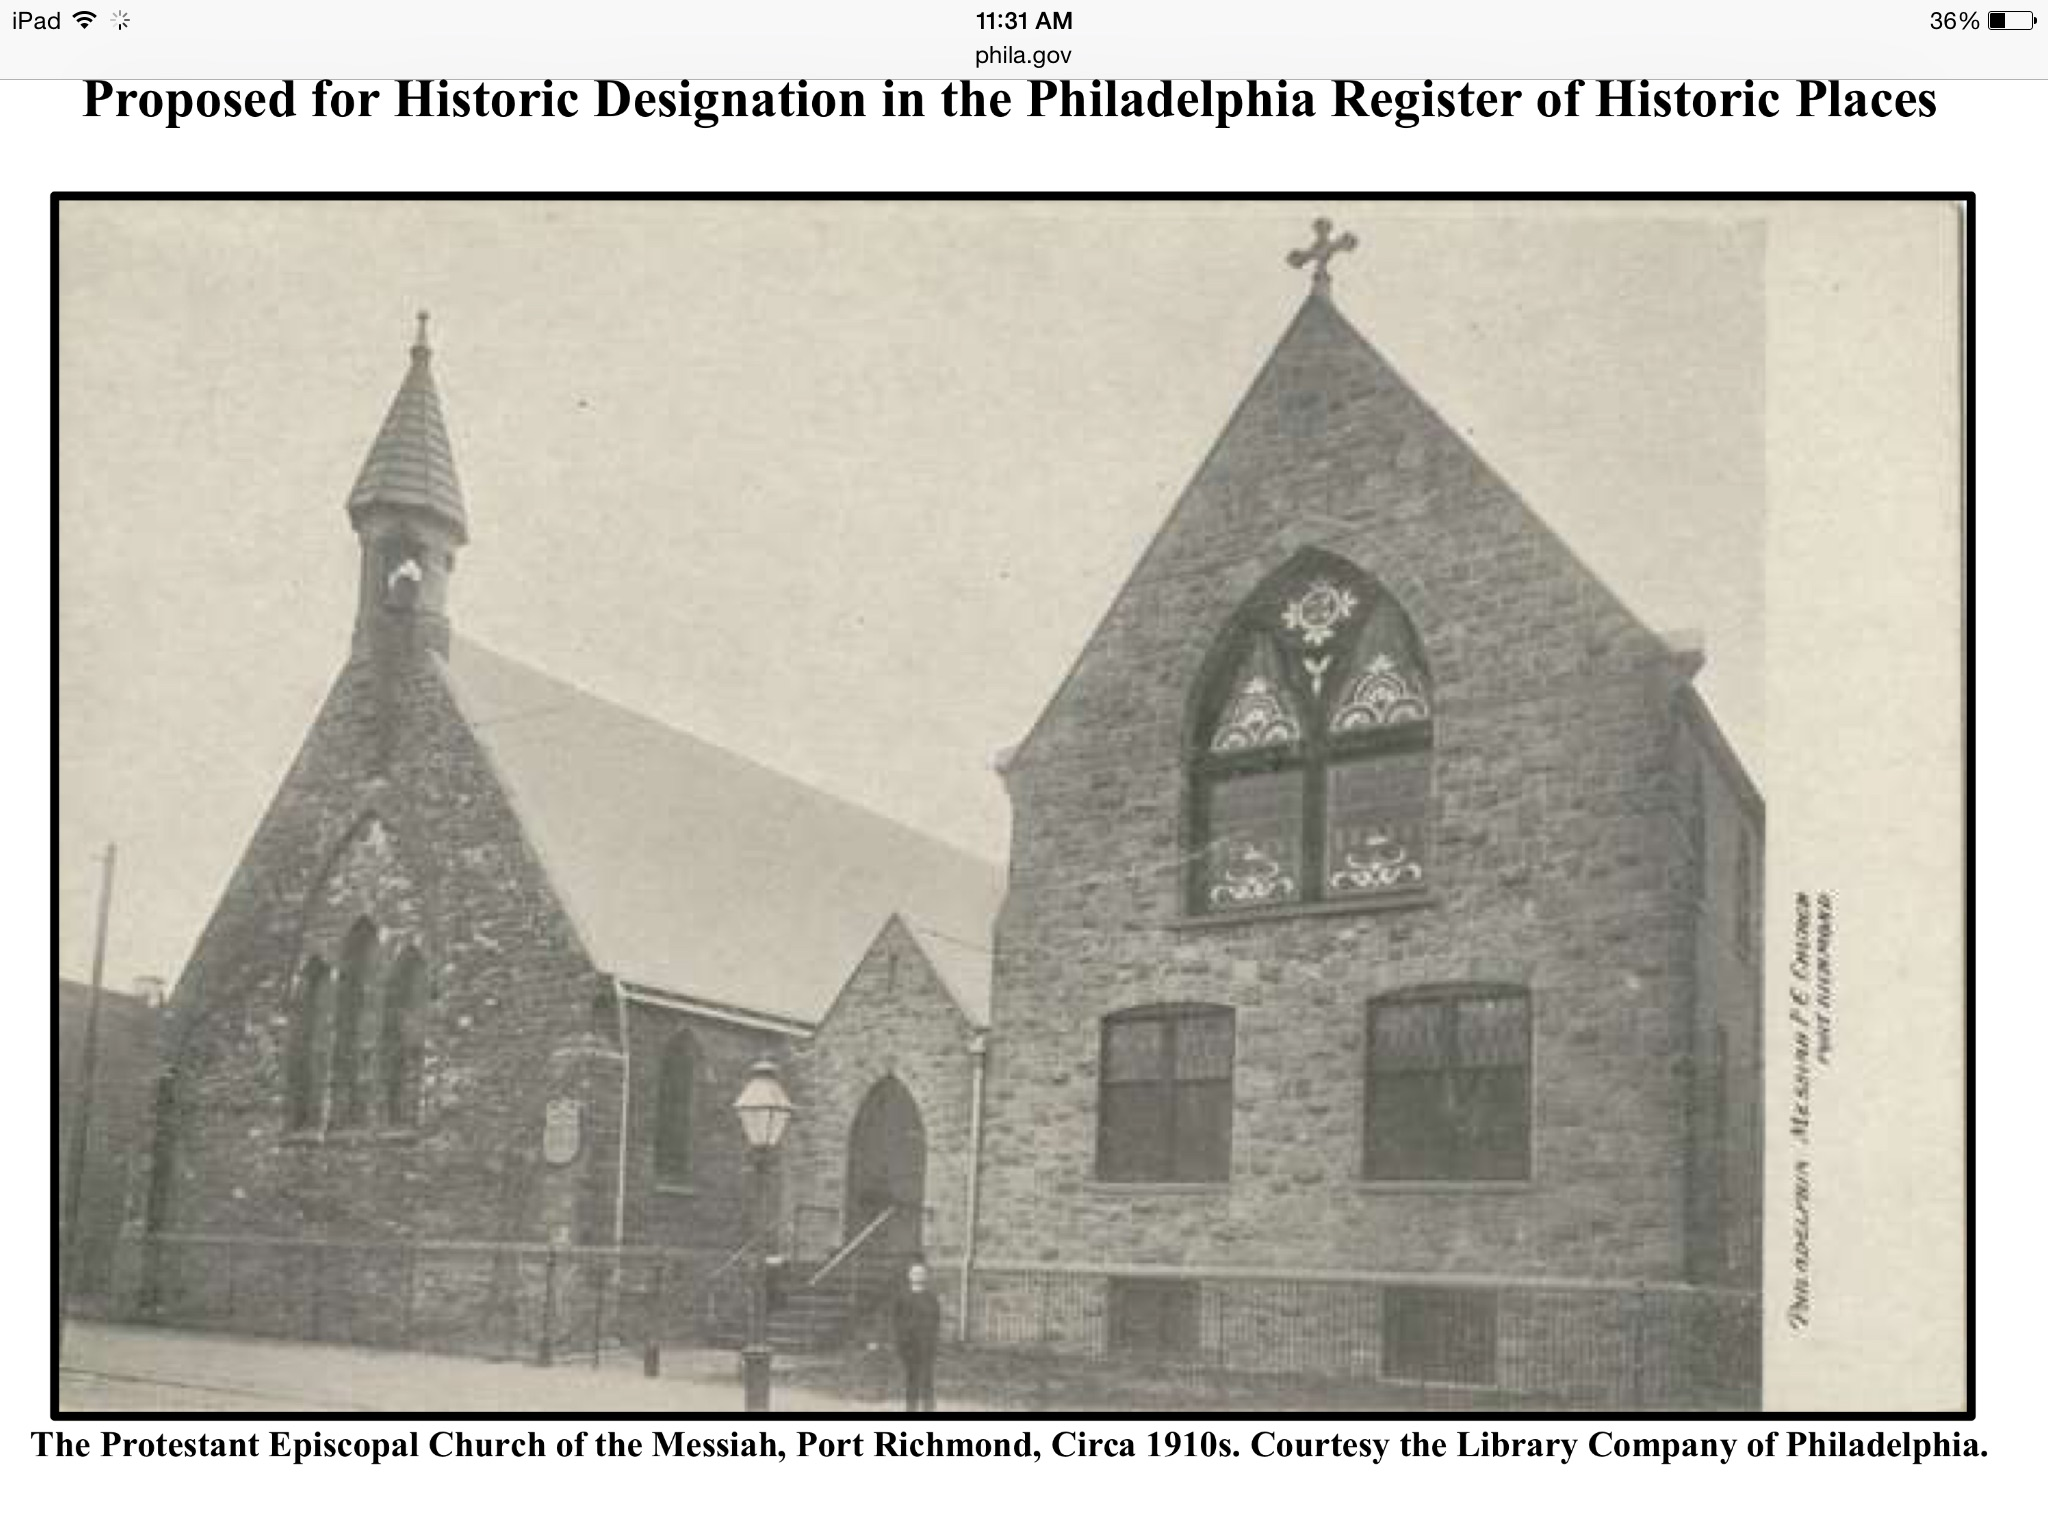 Protestant Episcopal Church of the Messiah, c. 1910 | Library Company of Philadelphia, Nomination for Philadelphia Register